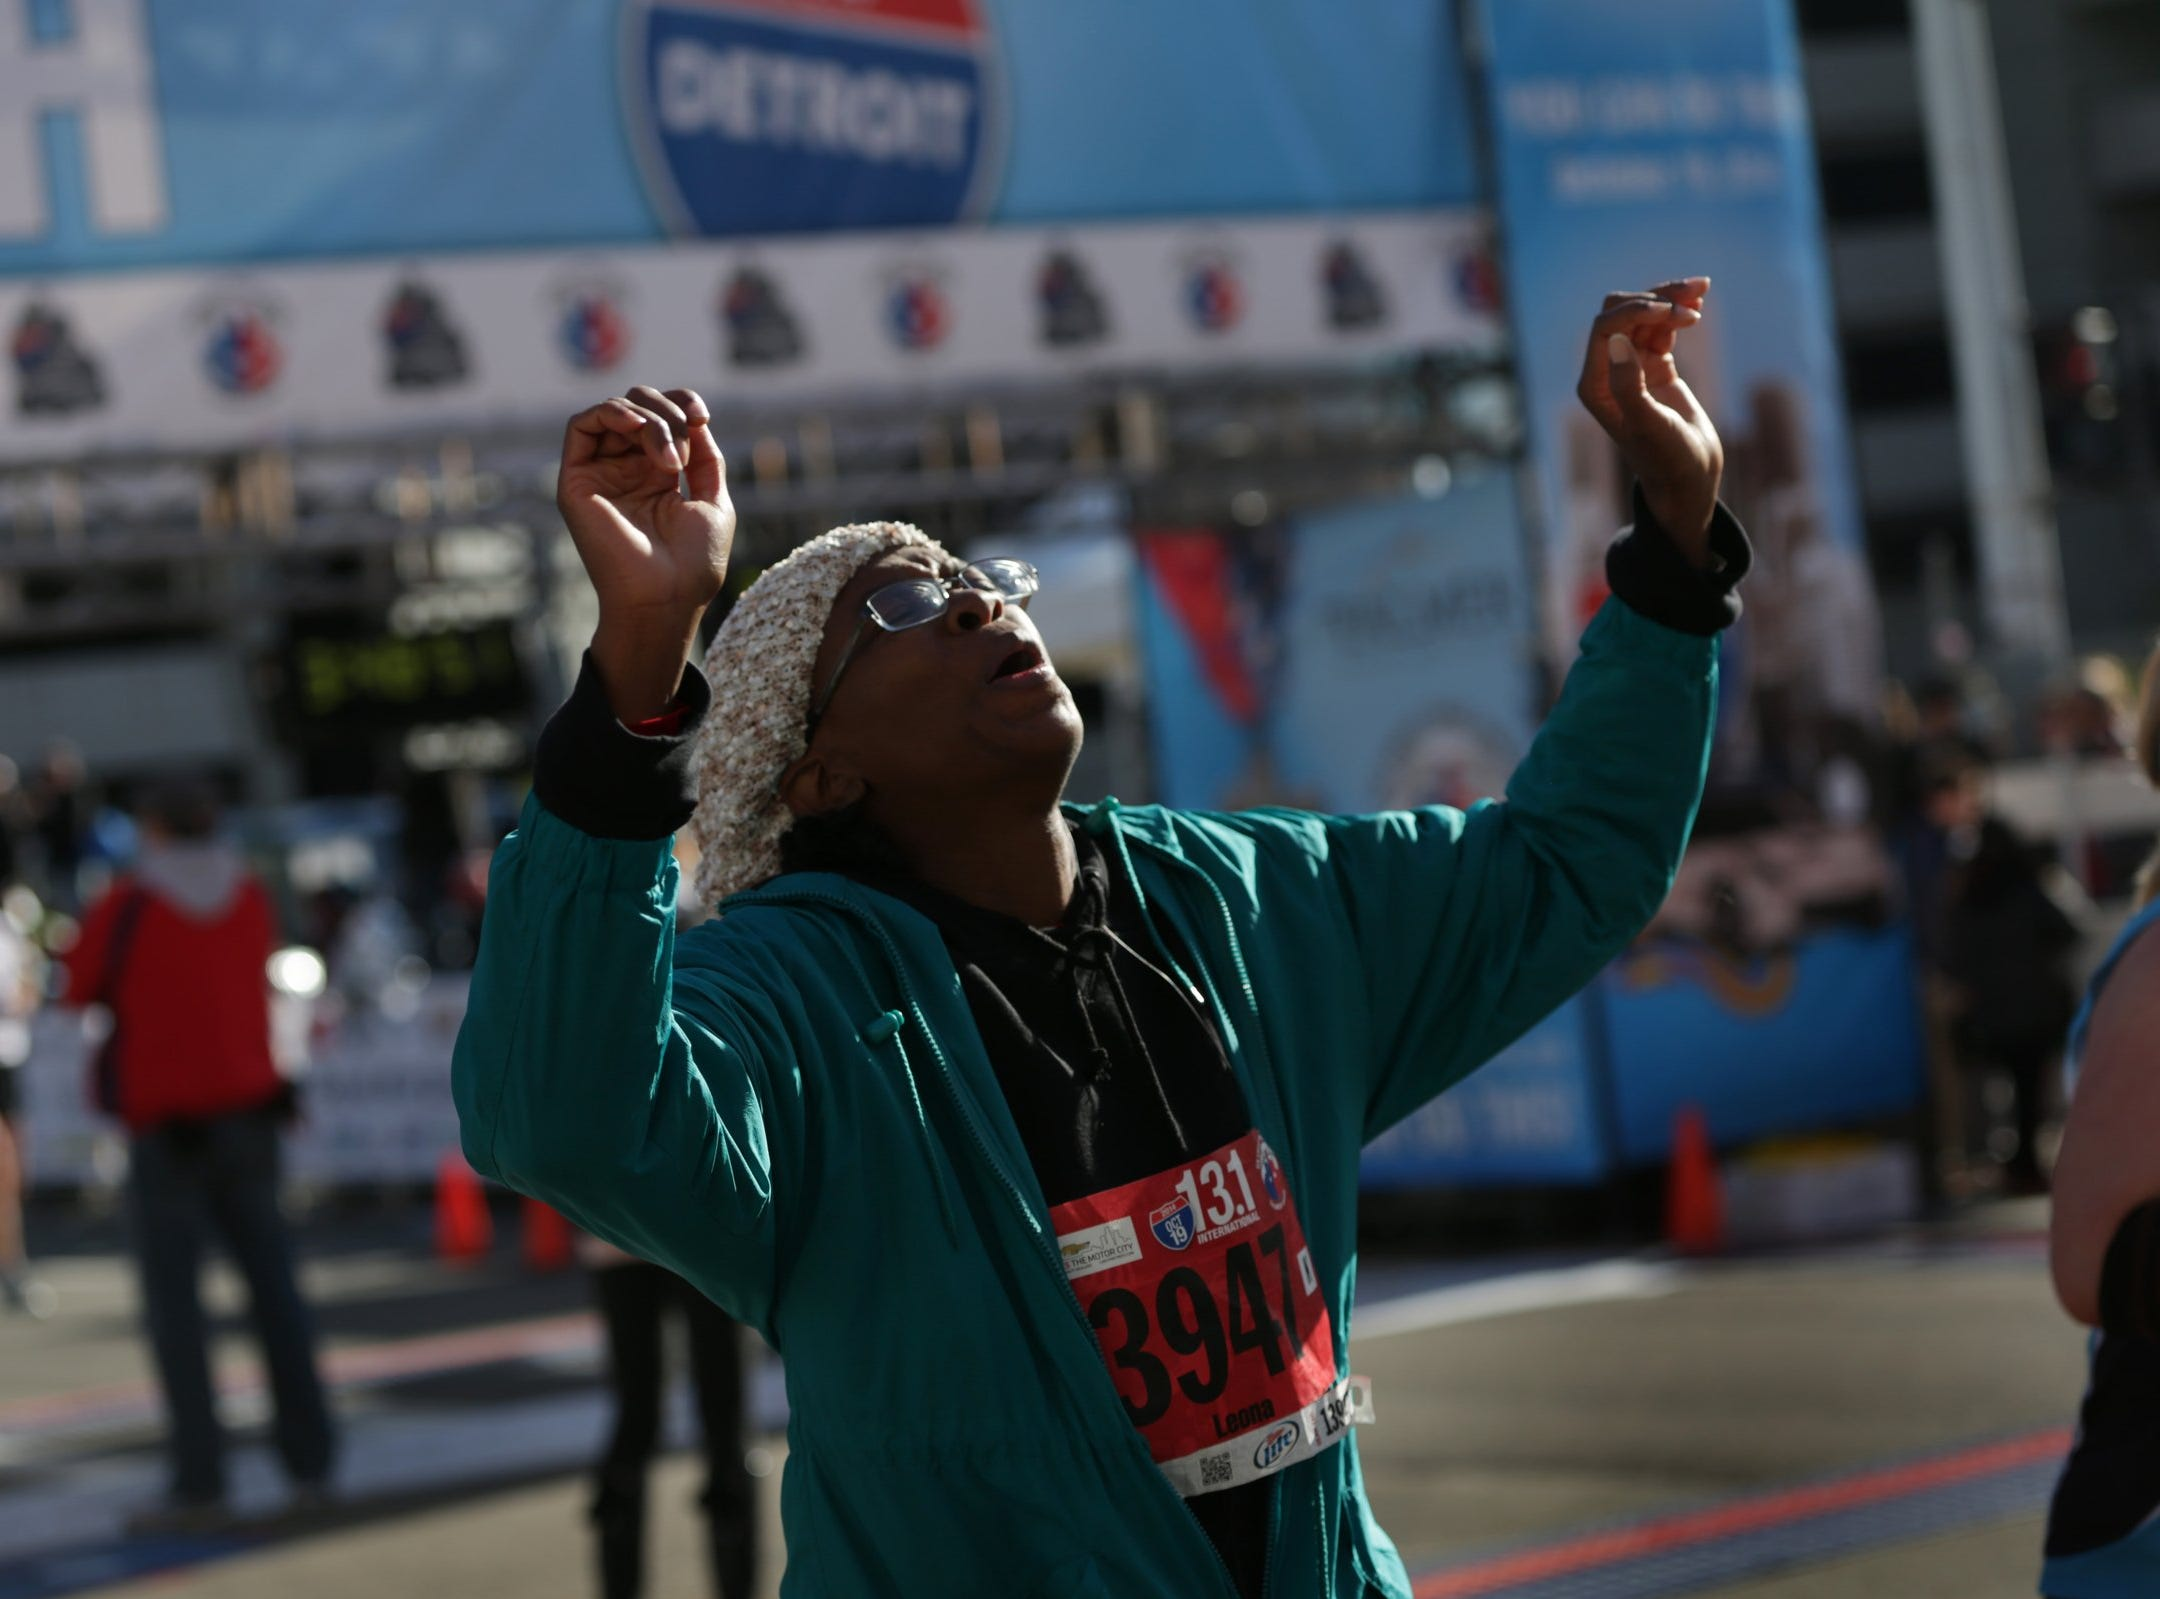 A Leona Burns of Oak Park  reacts after finishing her half marathon during the 37th Annual Detroit Free Press/Talmer Bank Marathon in Detroit on Sunday, Oct. 19, 2014.